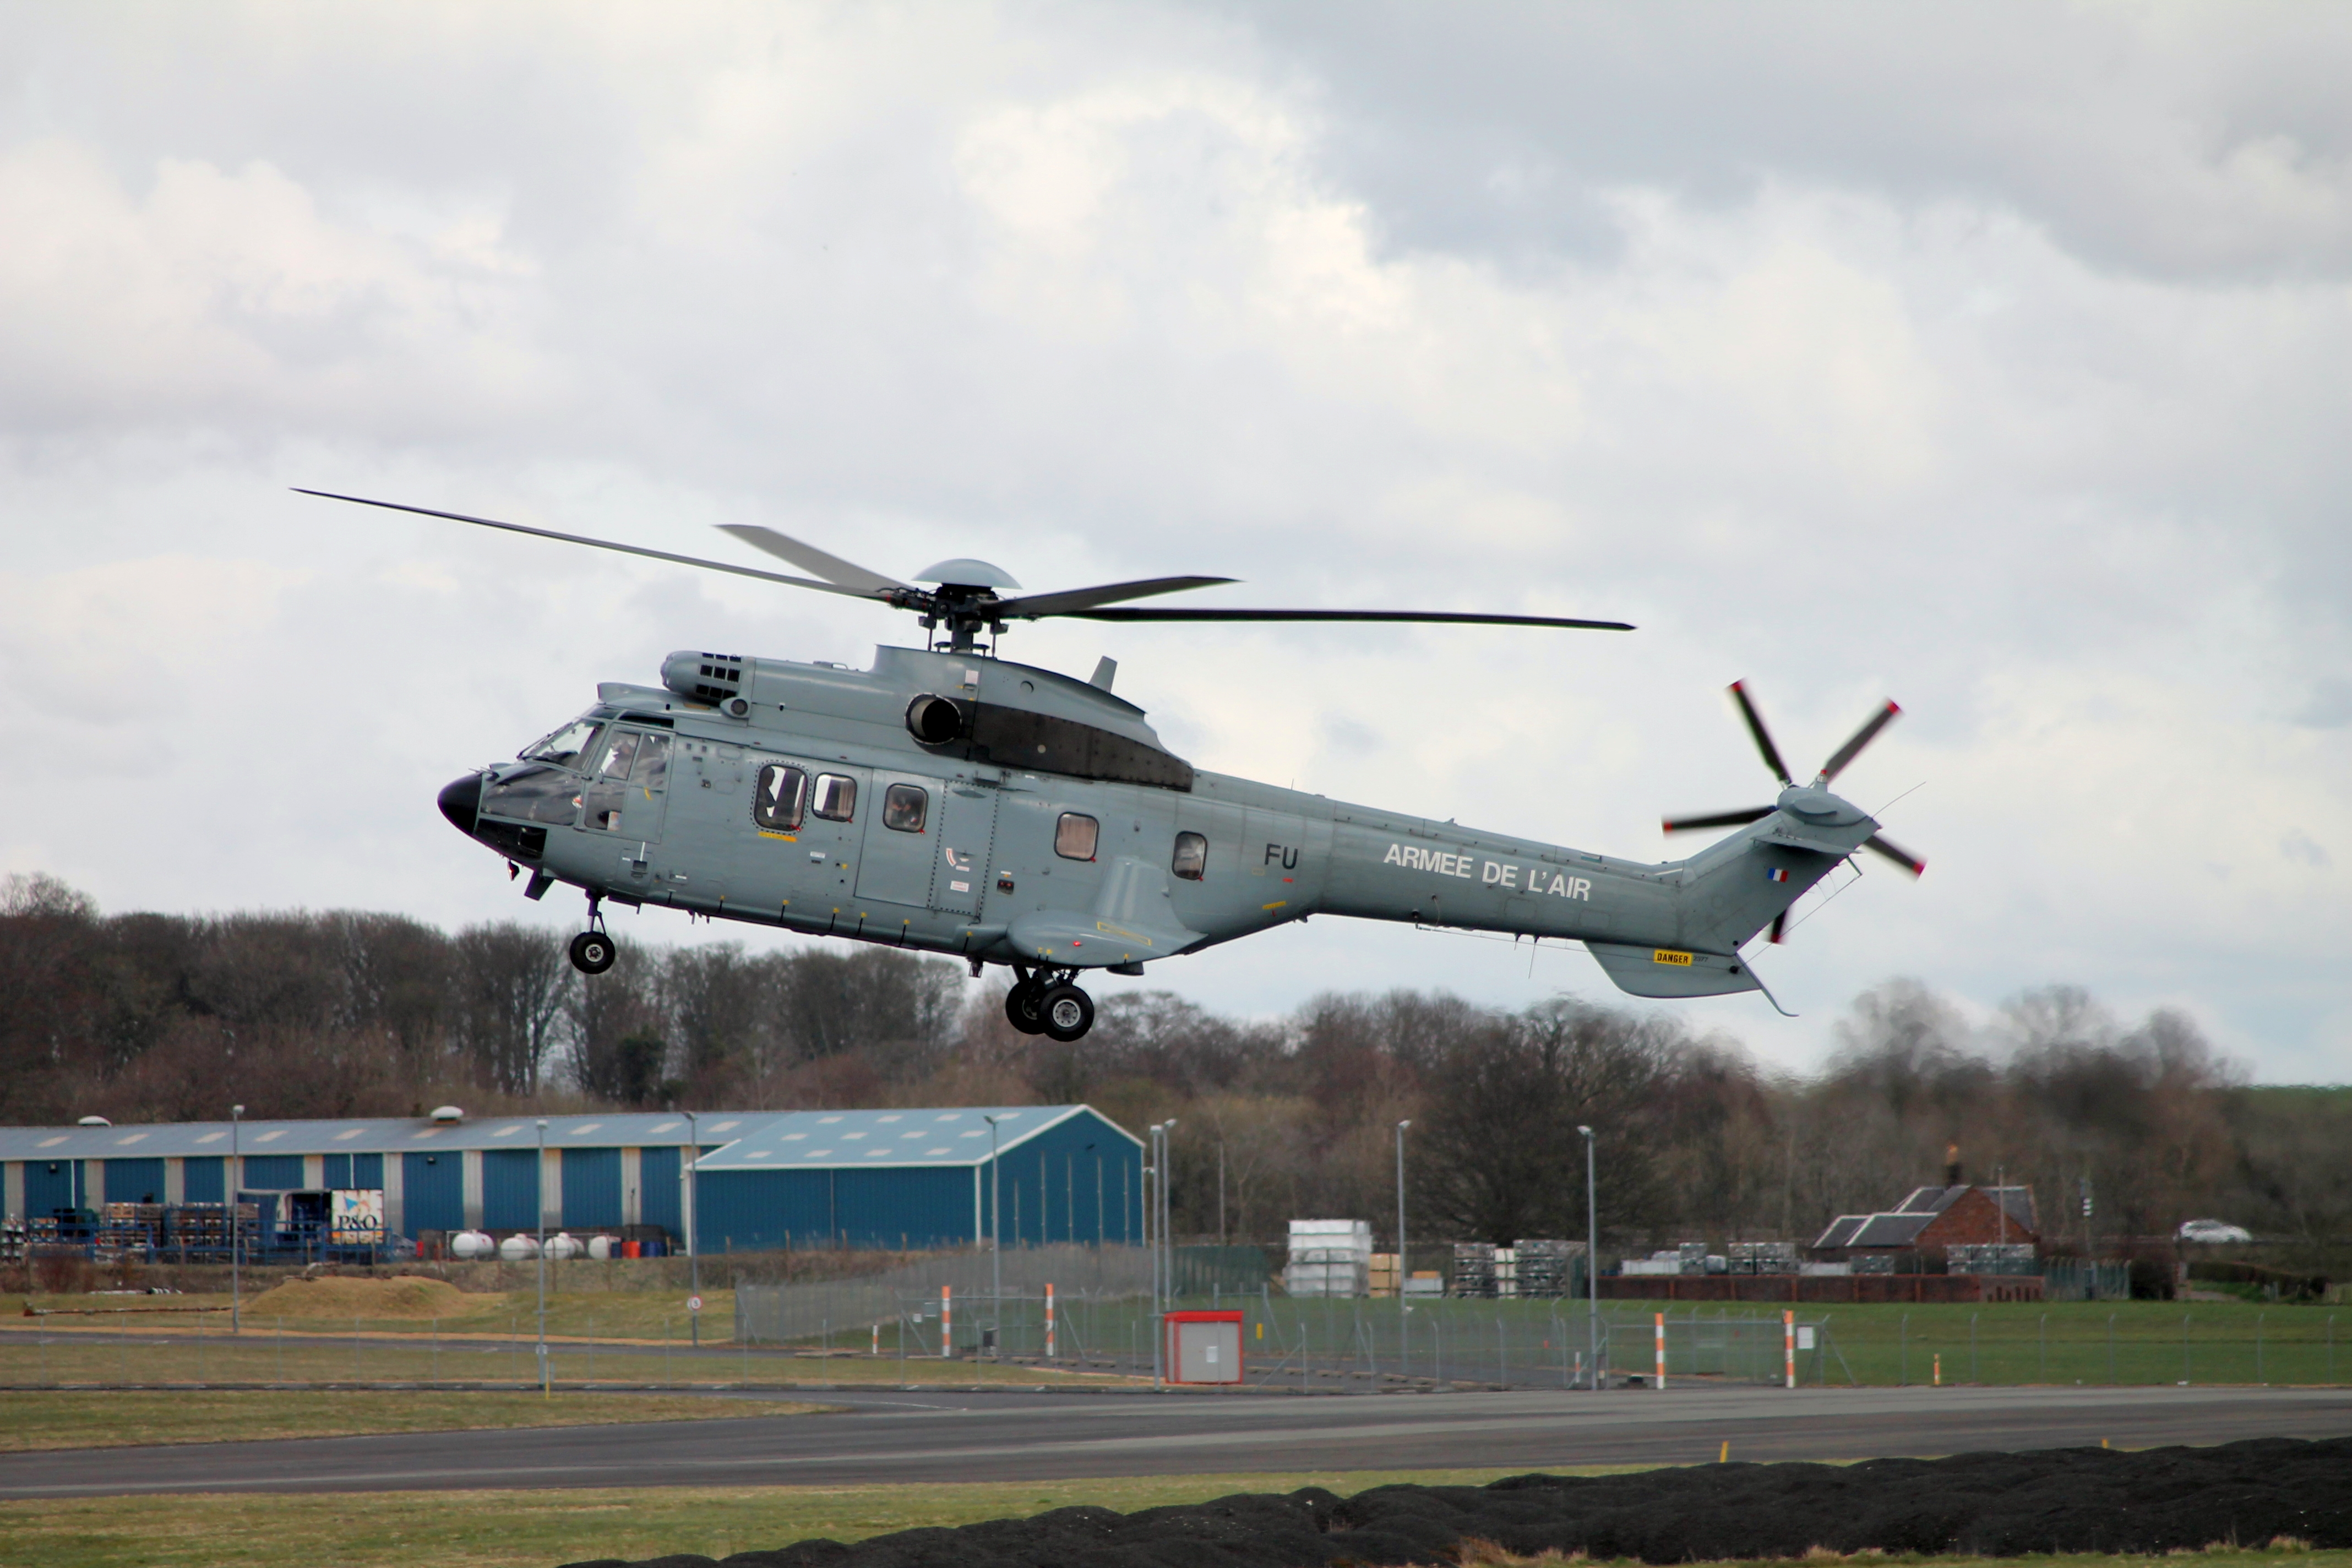 File:2377 FU Super Puma French Air Force (8666005282).jpg